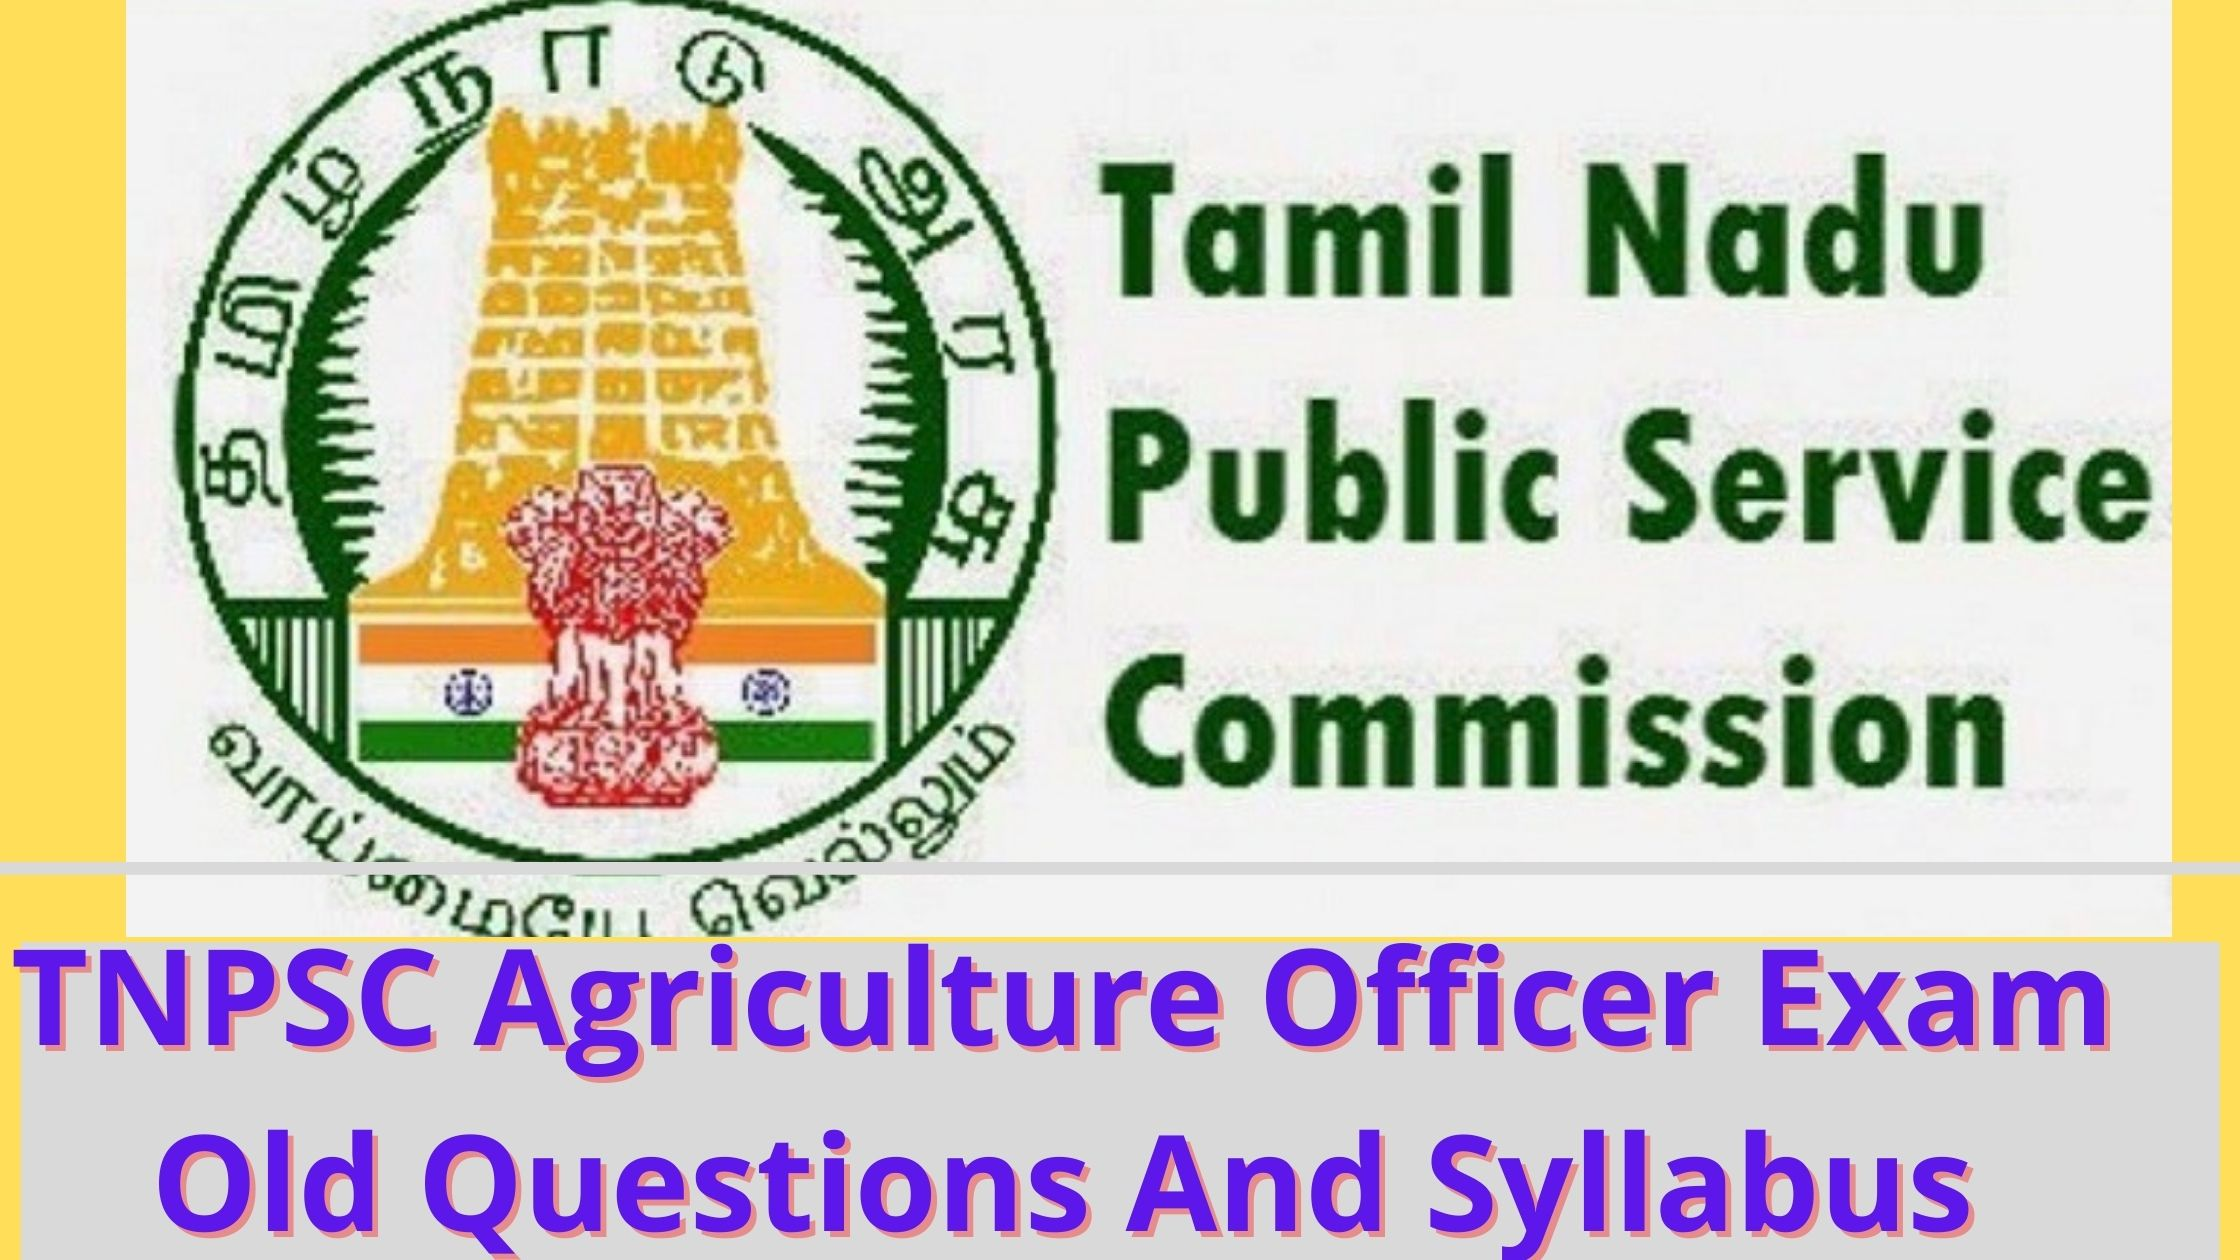 tnpsc agriculture officer old exam questions,tnpsc agriculture officer exam,tnpsc agriculture officer,agriculture officer,tnpsc,tnpsc agricultural officer exam study material,tnpsc agriculture officer exam preparation,agricultural officer,tnpsc agriculture officer 2020,tnpsc agriculture officer exam 2021,tnpsc agriculture officer ao syllabus 2020,tnpsc agriculture officer exam preparation 2021,assistant agriculture officer,agriculture officer tnpsc,tnpsc agriculture officer salary,tnpsc agriculture officer book list